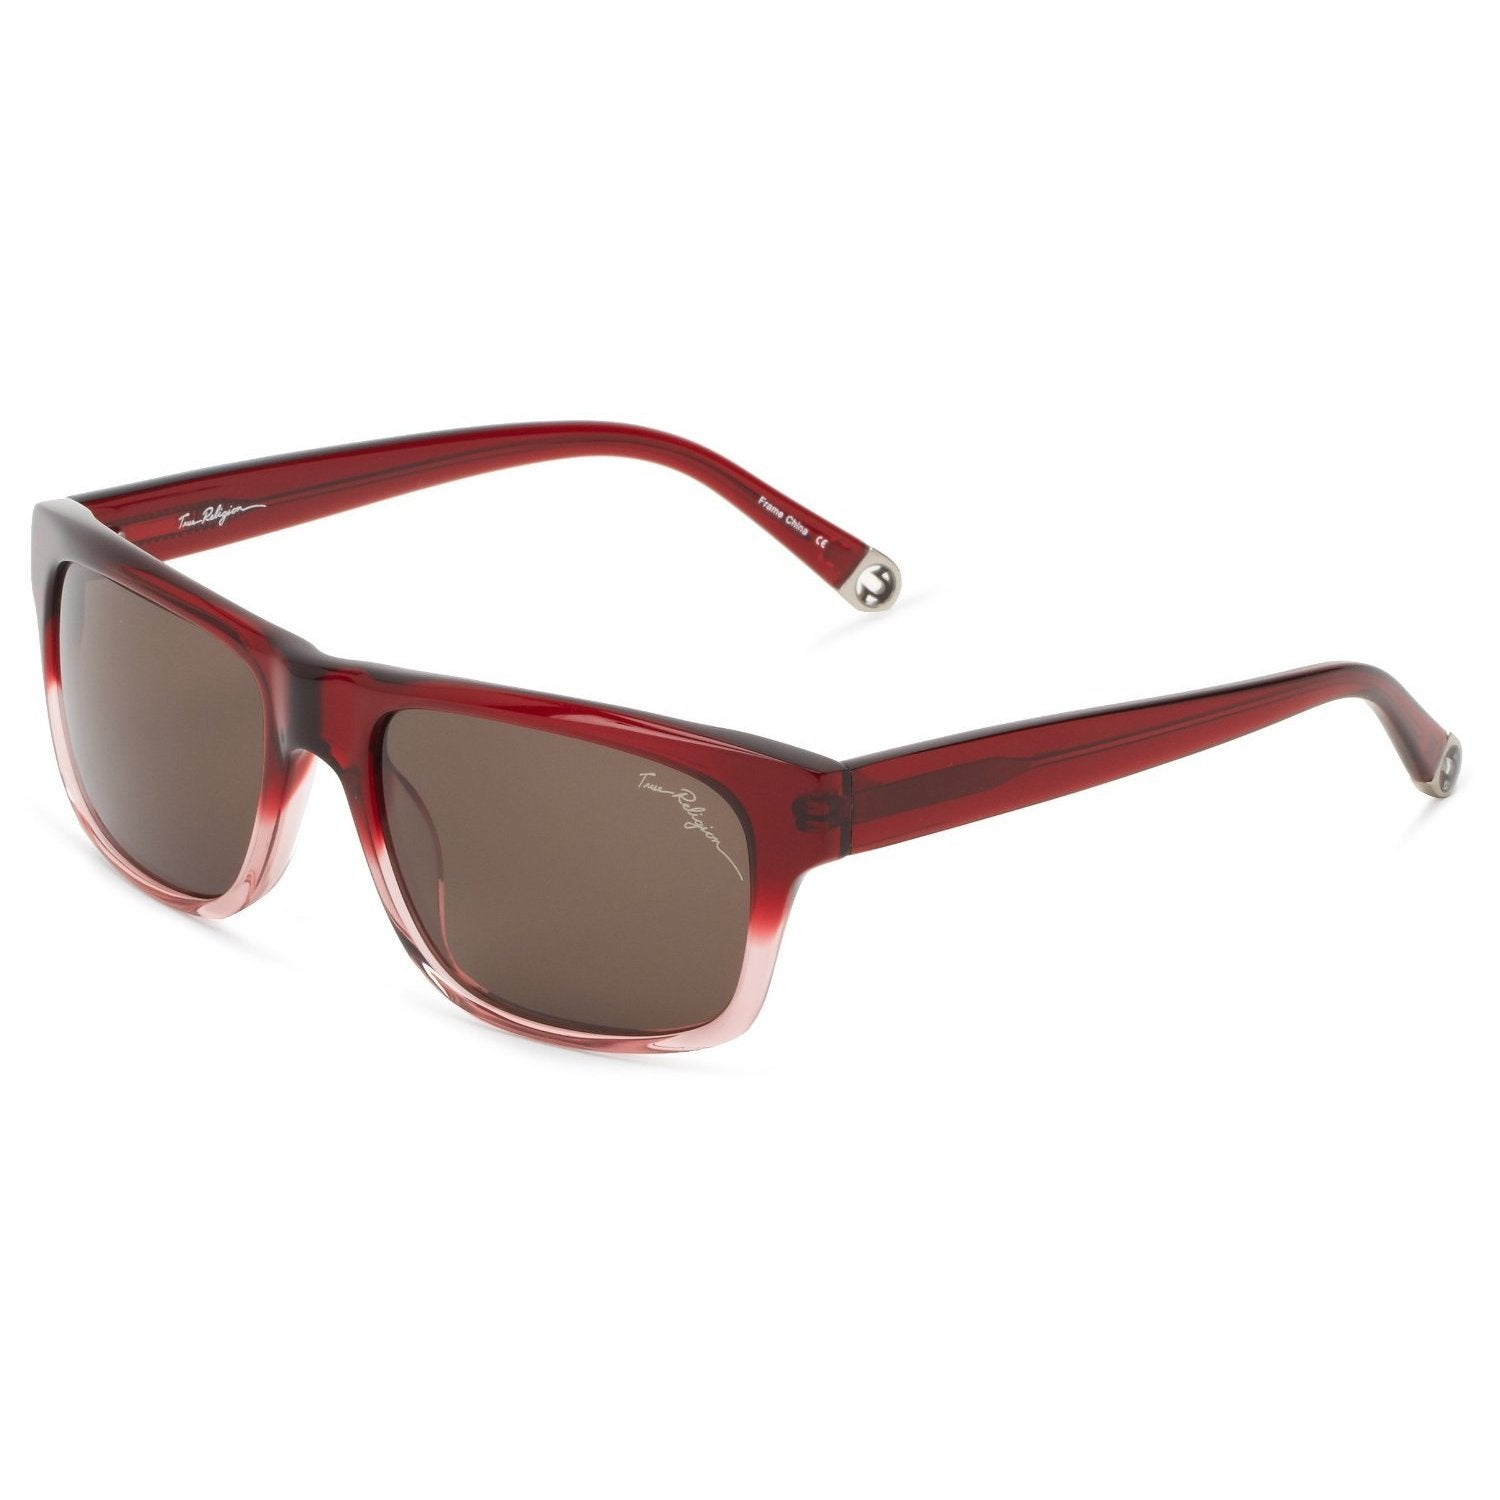 True Religion Jamie Rectangular Burgundy and Pink Sunglasses - M | eBay